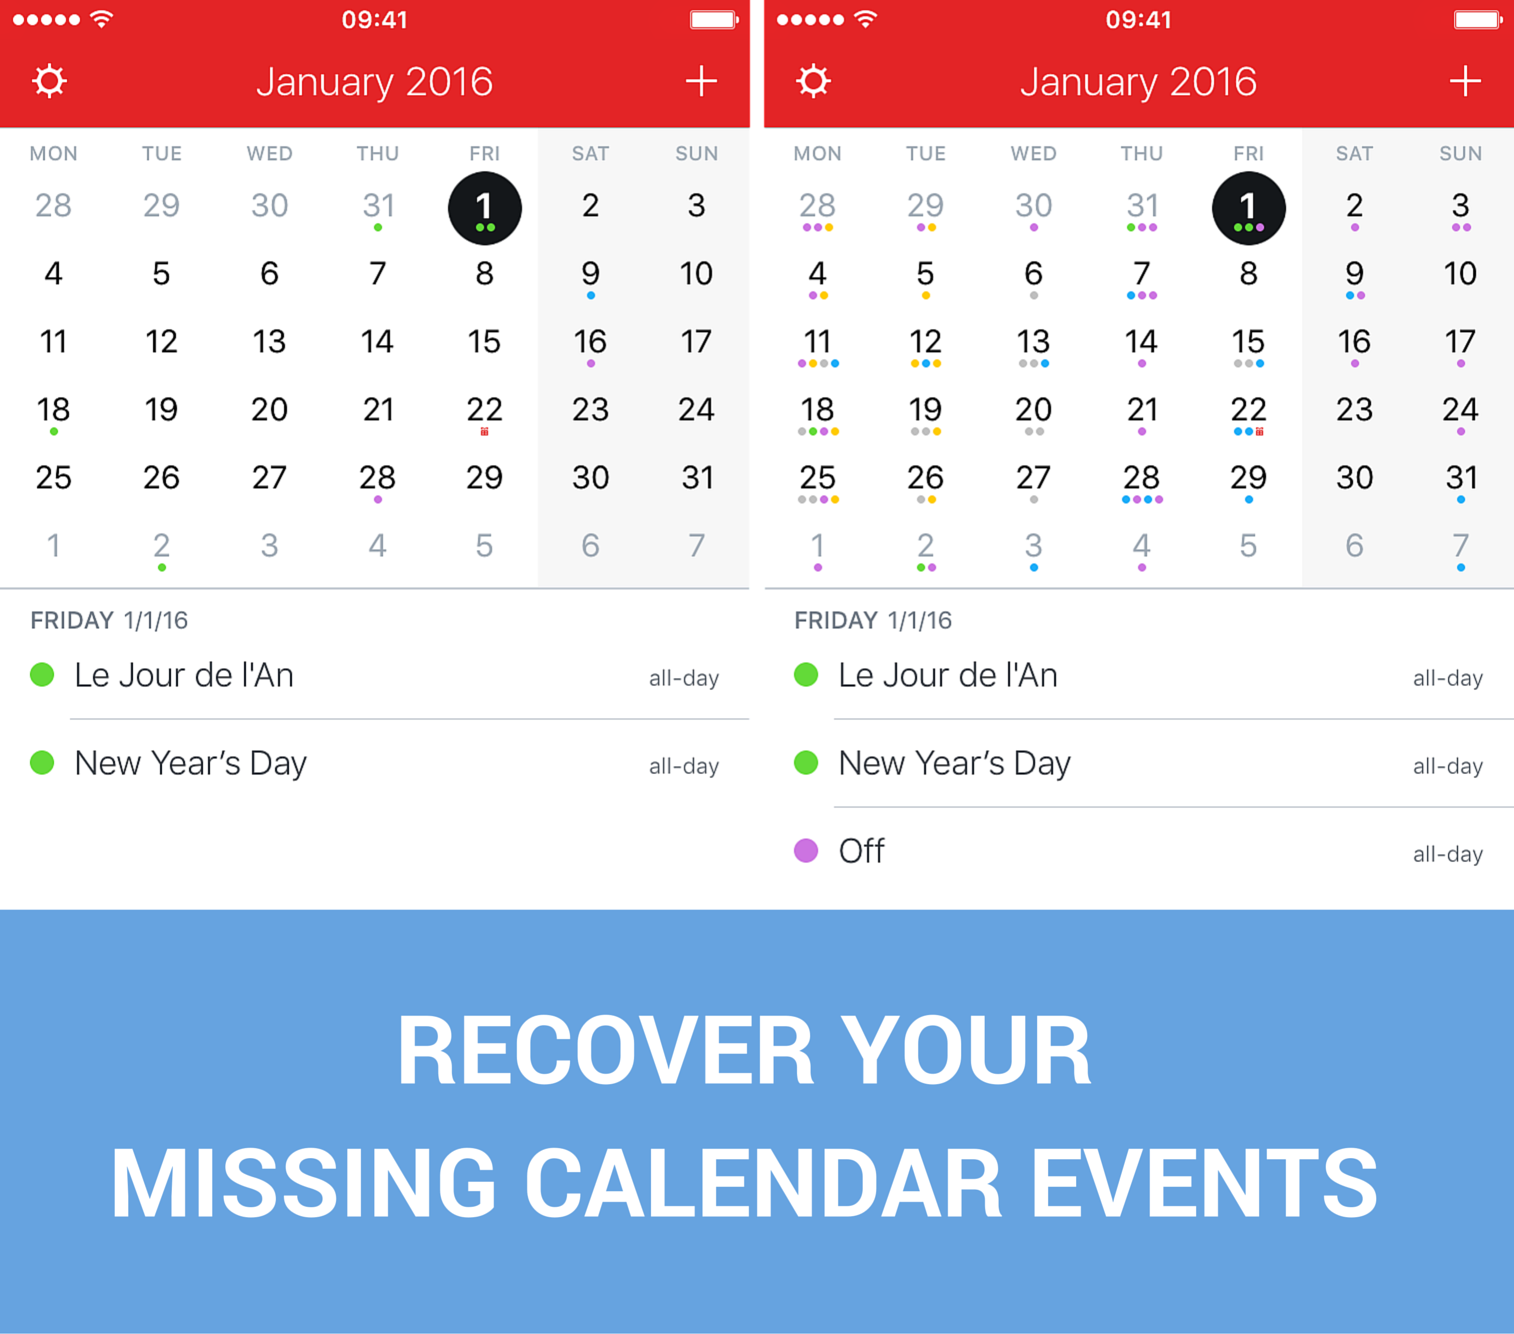 Recover missing calendar events